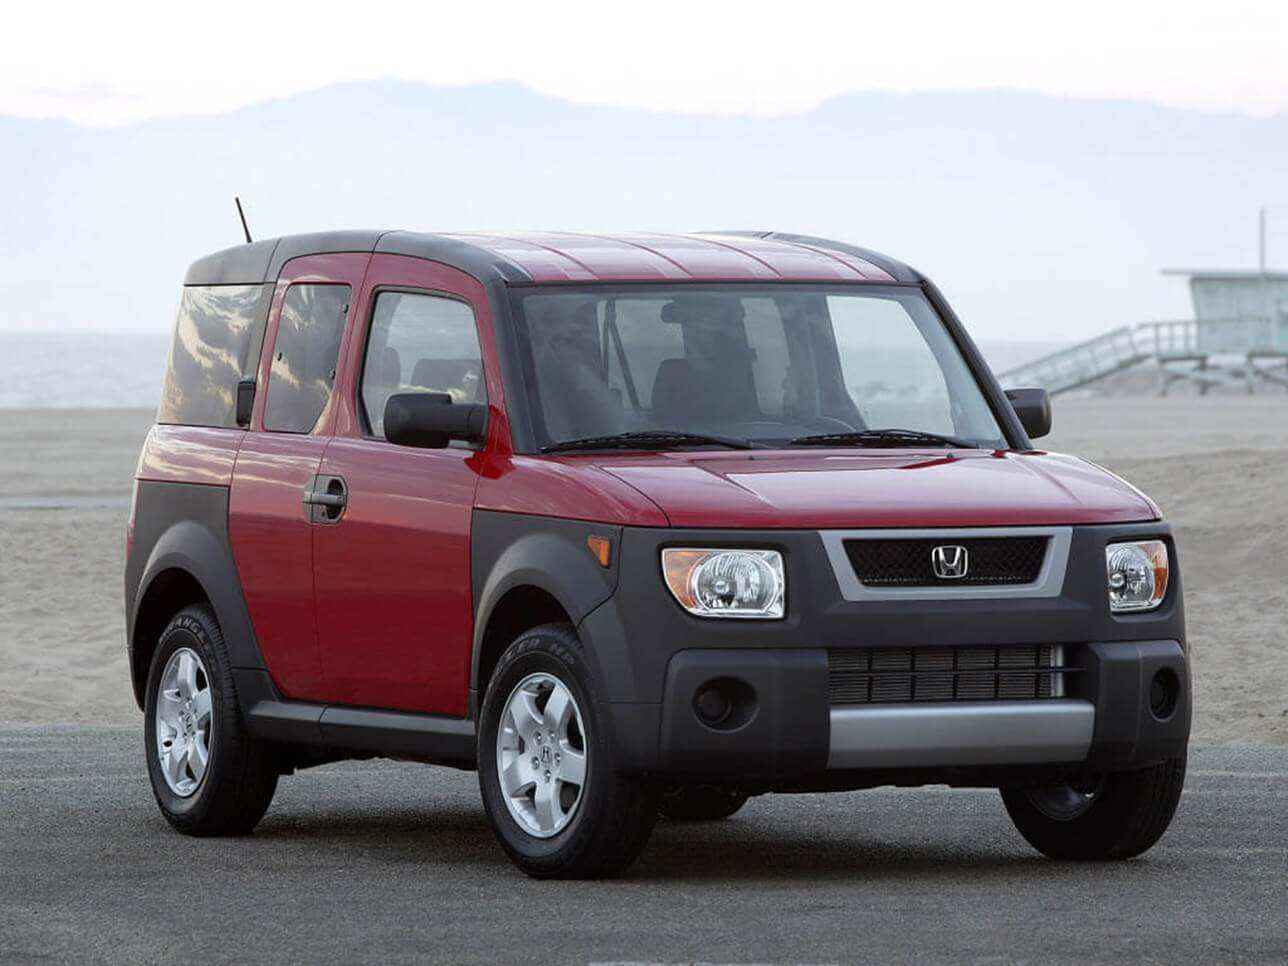 93 Great Honda Element 2020 Usa Overview for Honda Element 2020 Usa